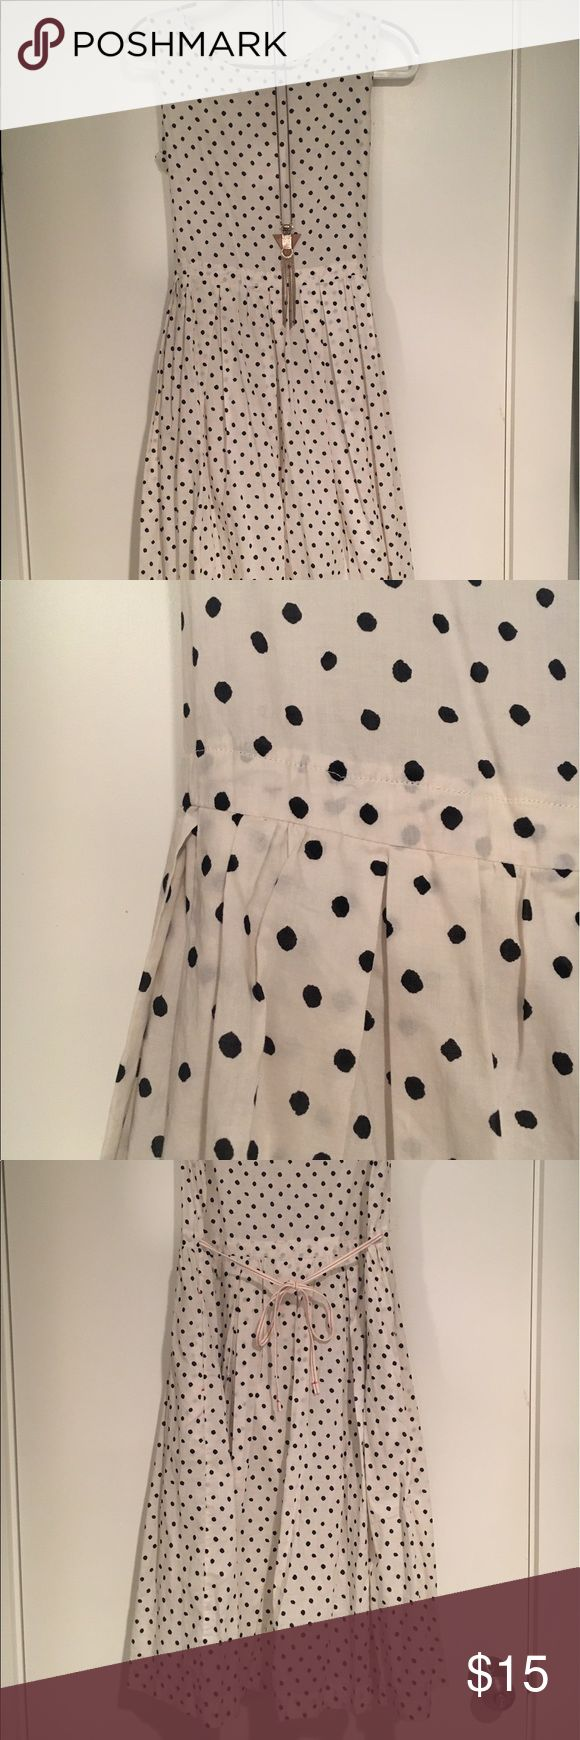 Uniqlo black and white polka dot dress Uniqlo black and white polka dot dress with lined skirt and tie back. Lightweight and perfect with low heels and a necklace. Hits 5'7 woman about mid calf. Uniqlo Dresses